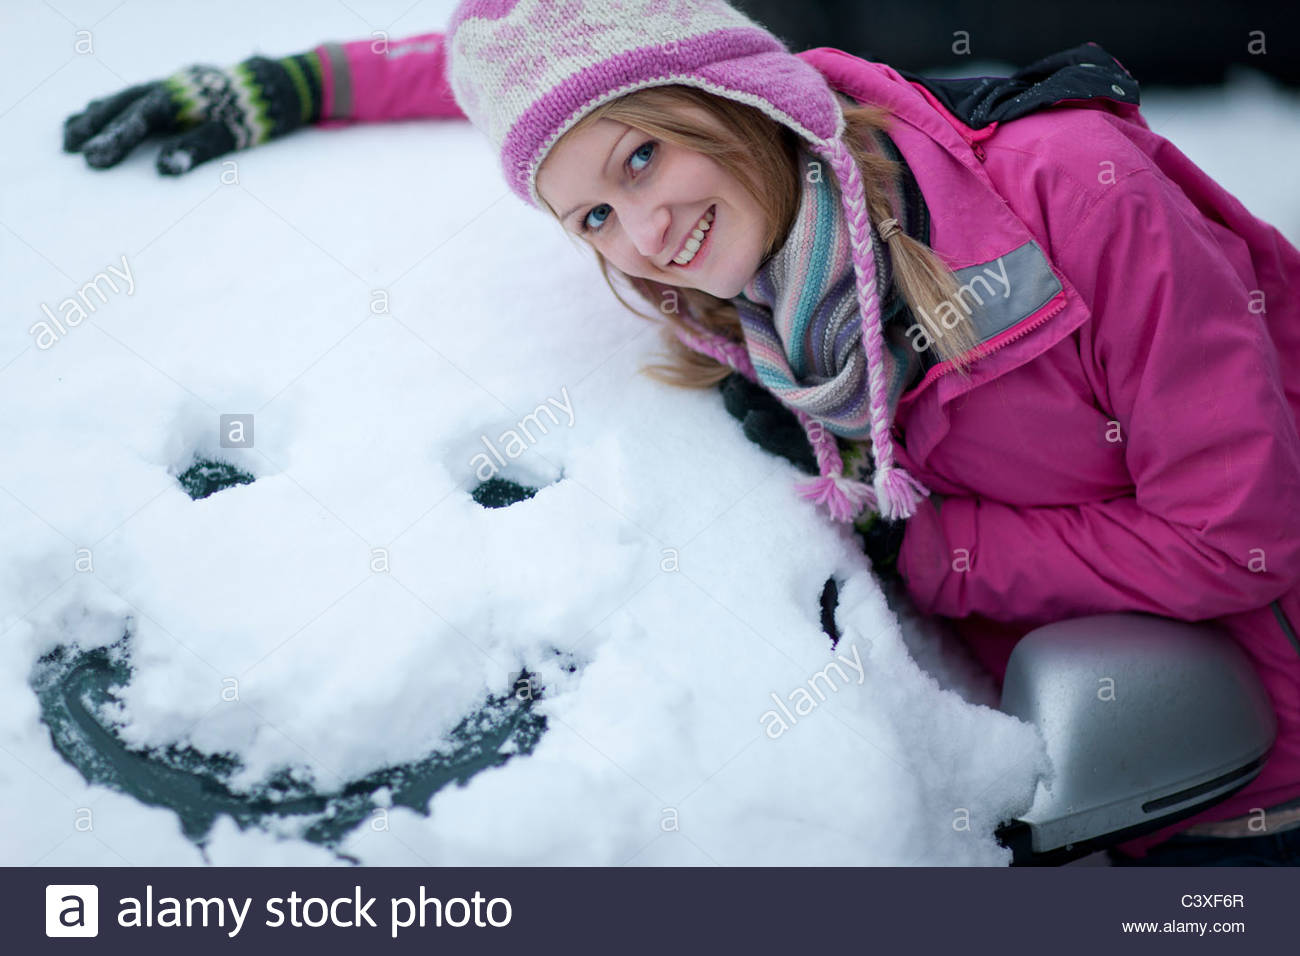 Woman making a face in snow on car windshield - Stock Image